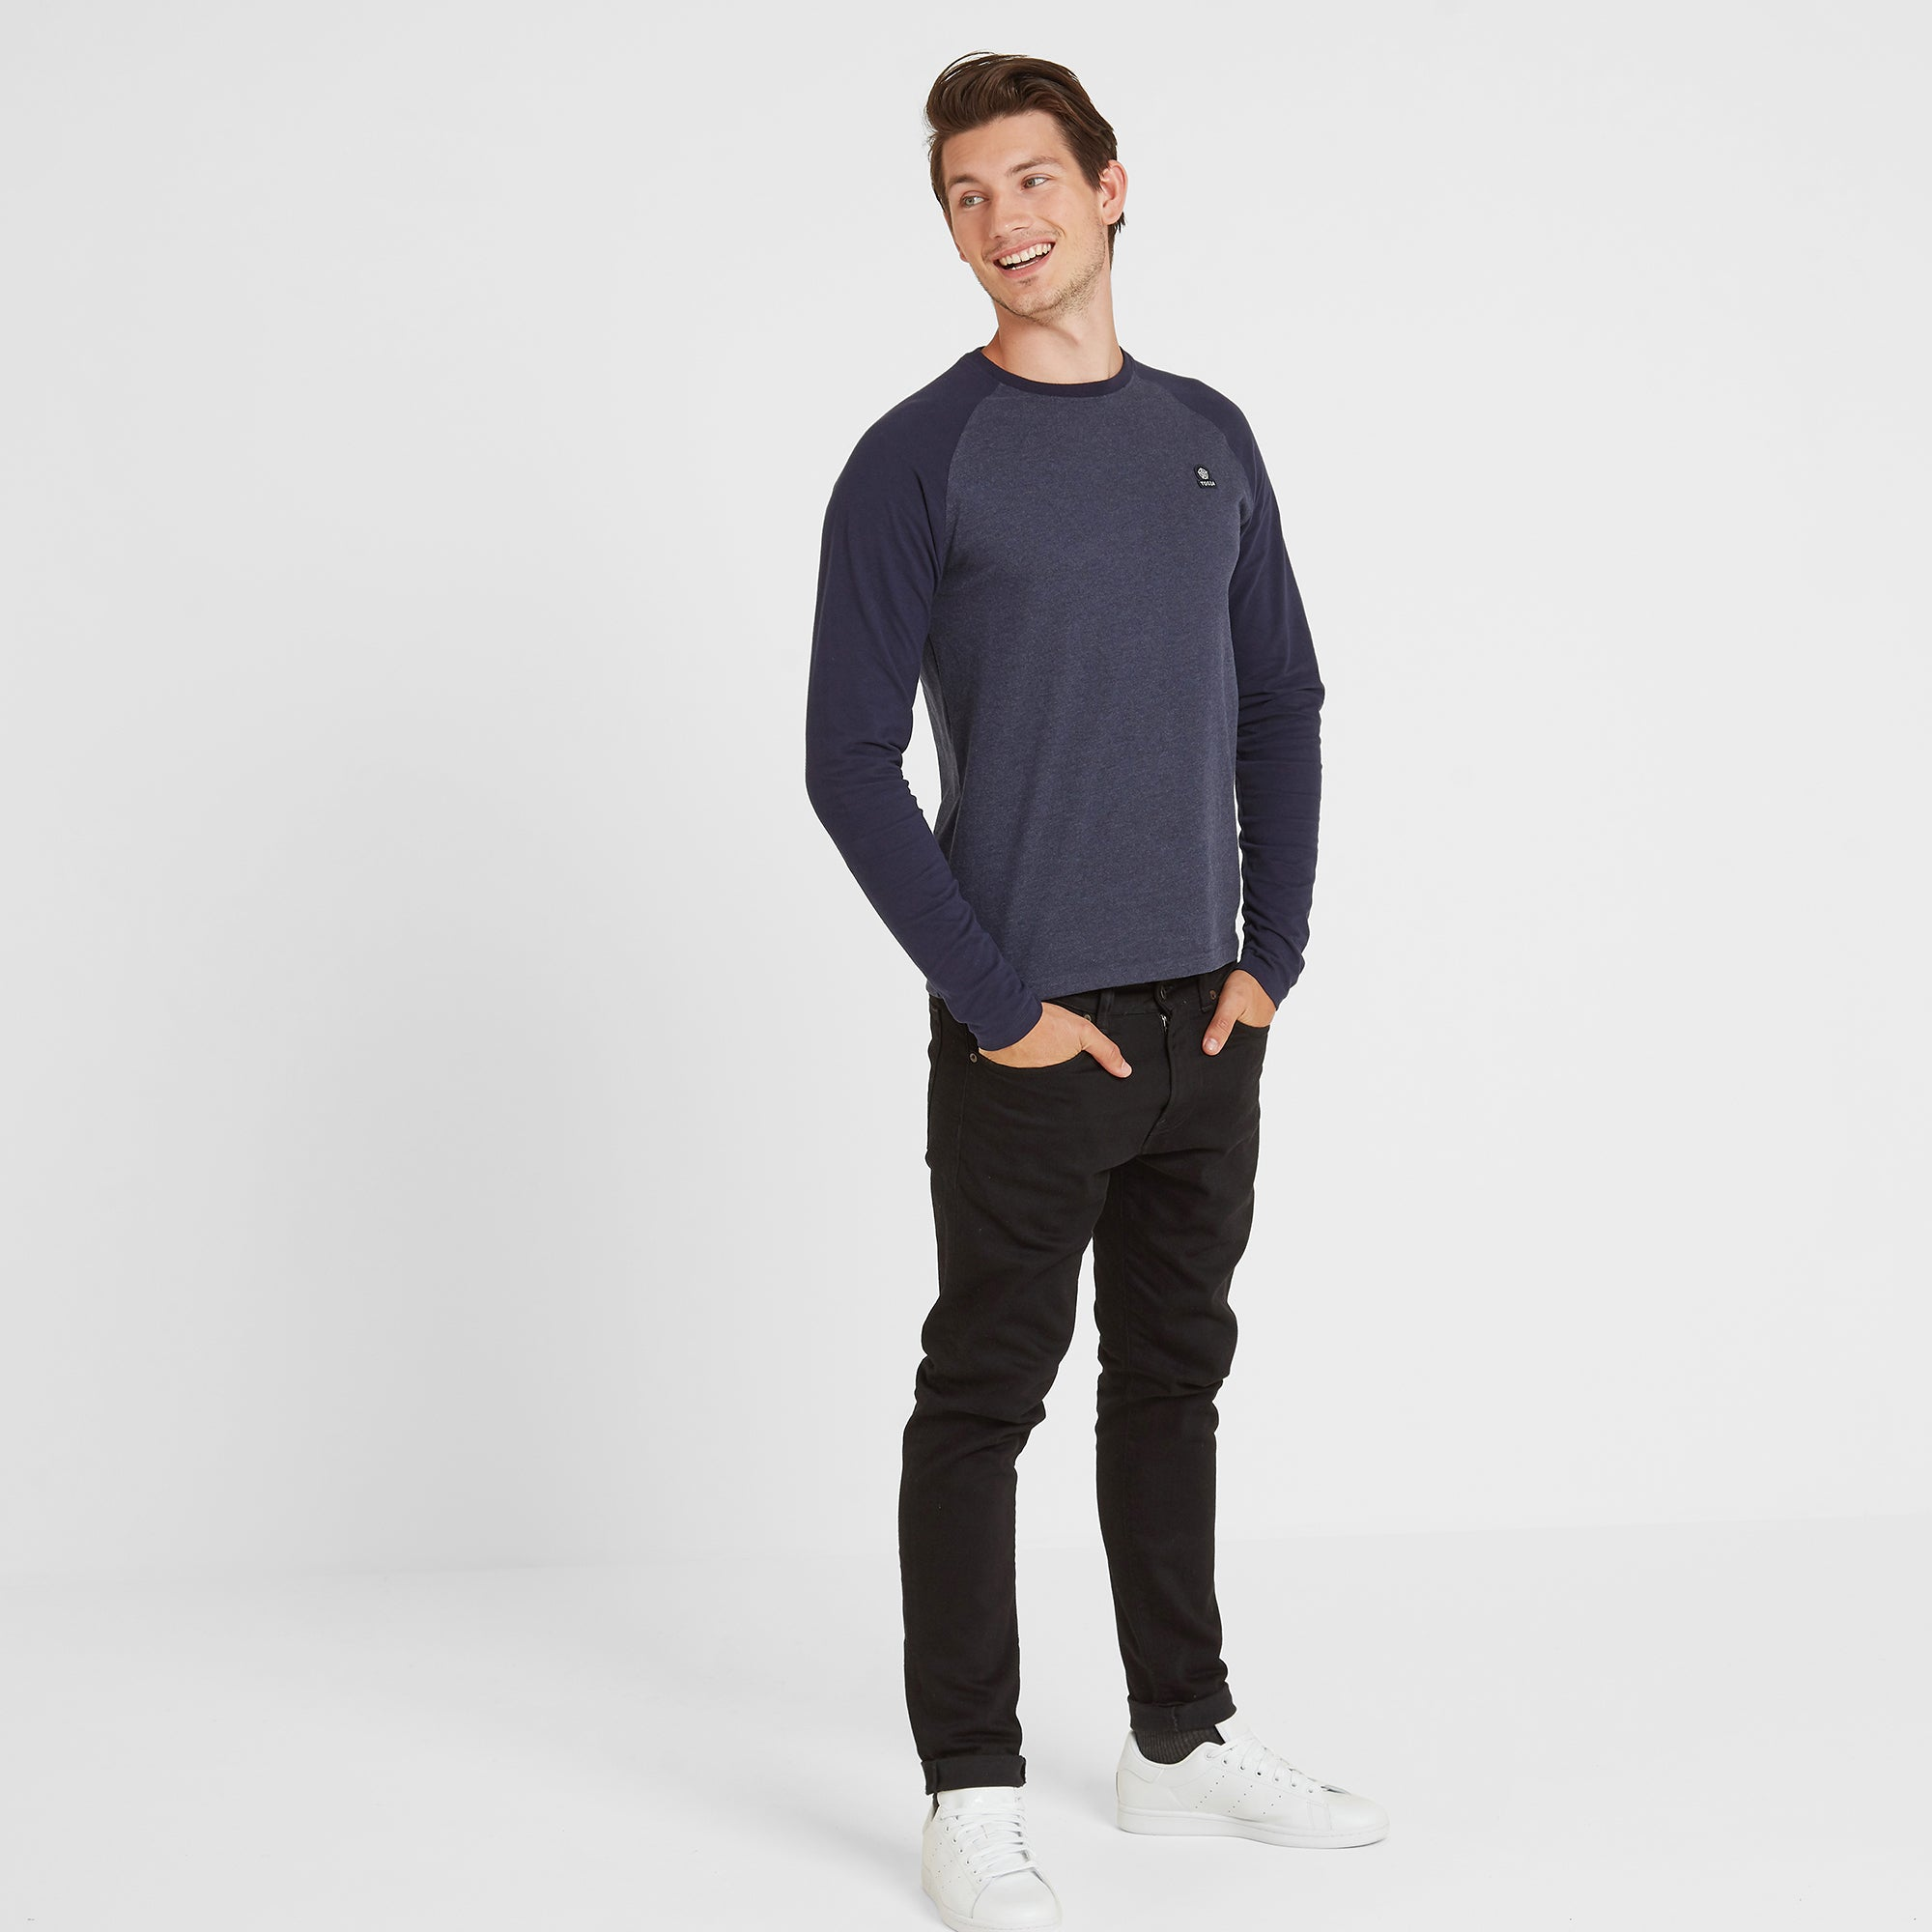 Haxby Mens Long Sleeve Raglan T-Shirt - Navy Marl/Navy